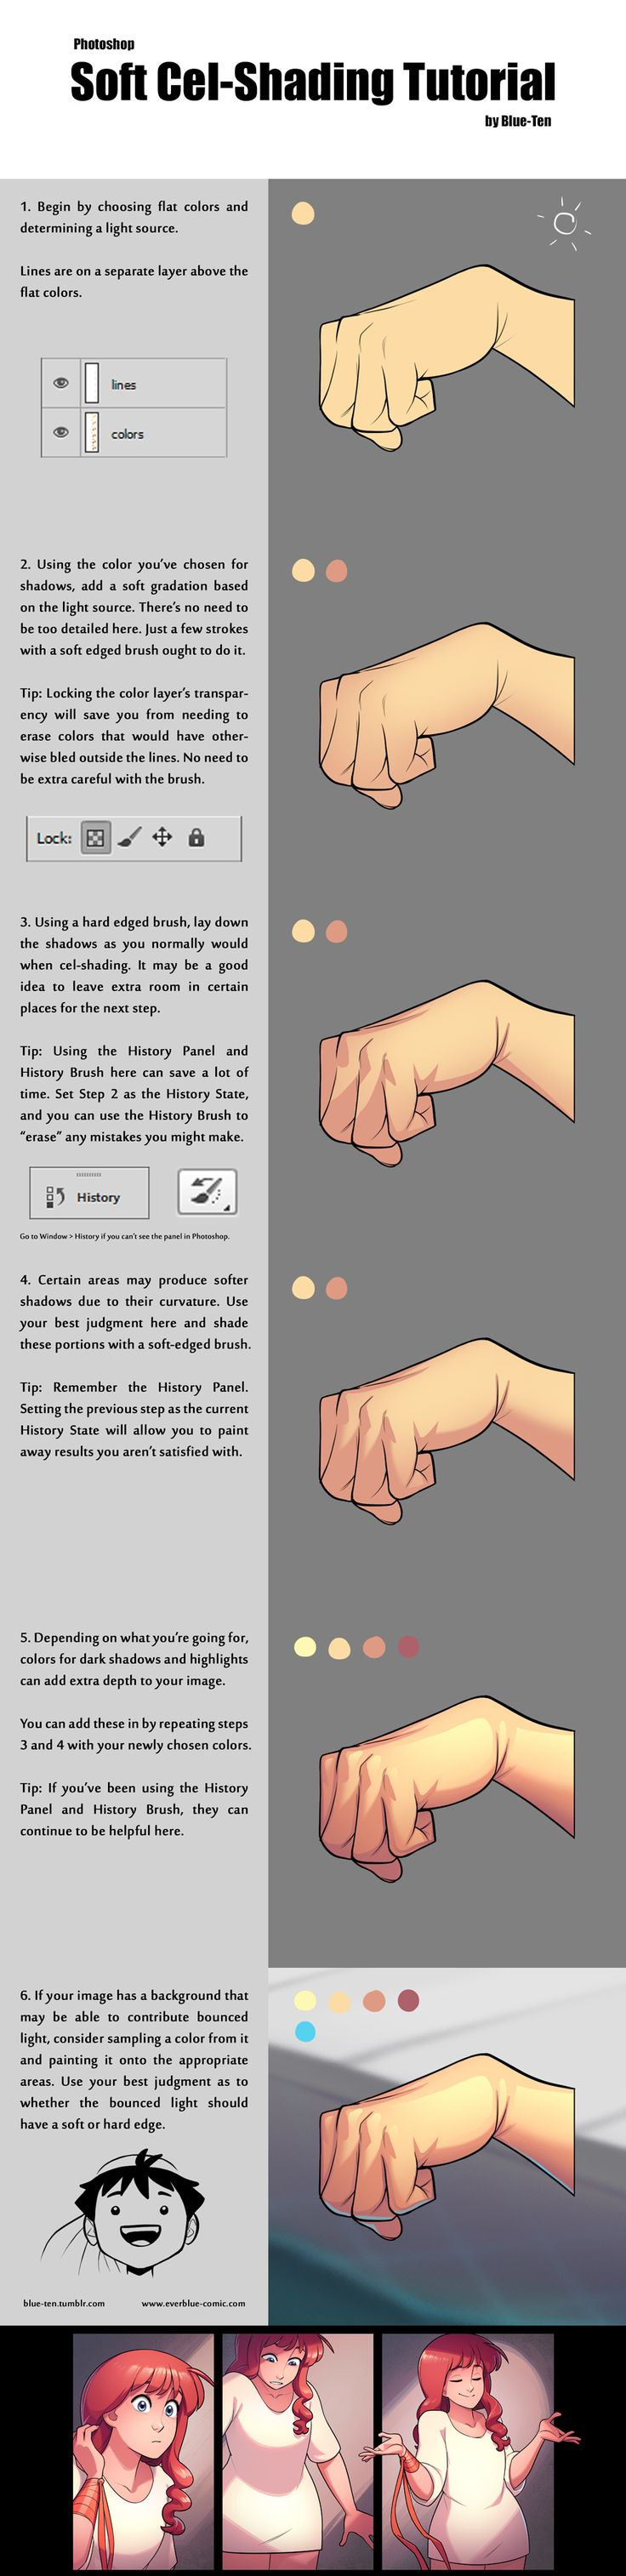 Soft cel-shading tutorial